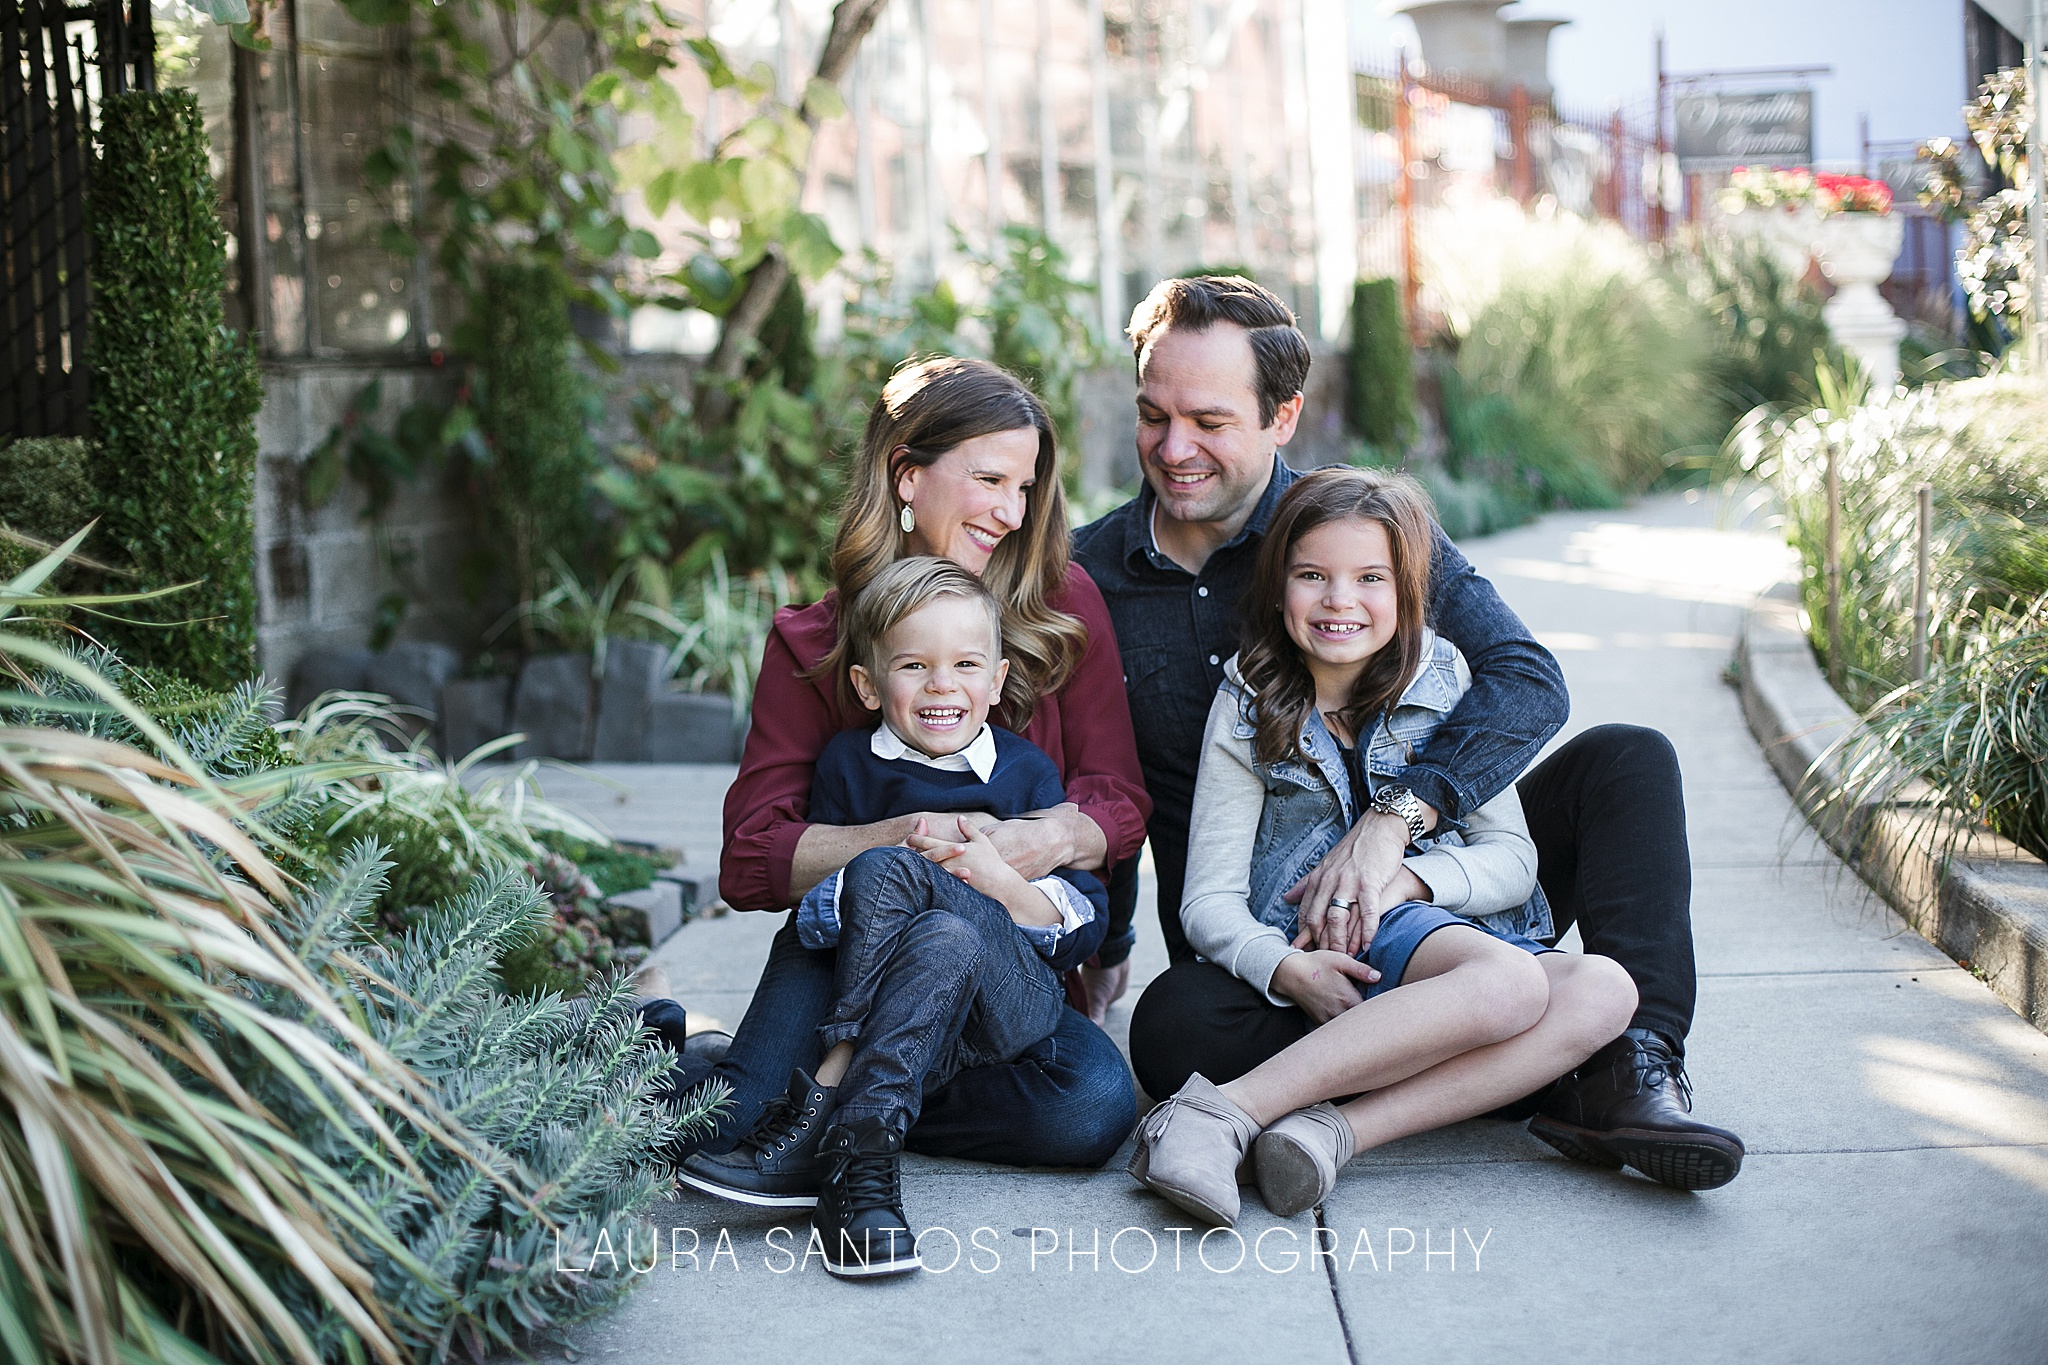 Laura Santos Photography Portland Oregon Family Photographer_0625.jpg